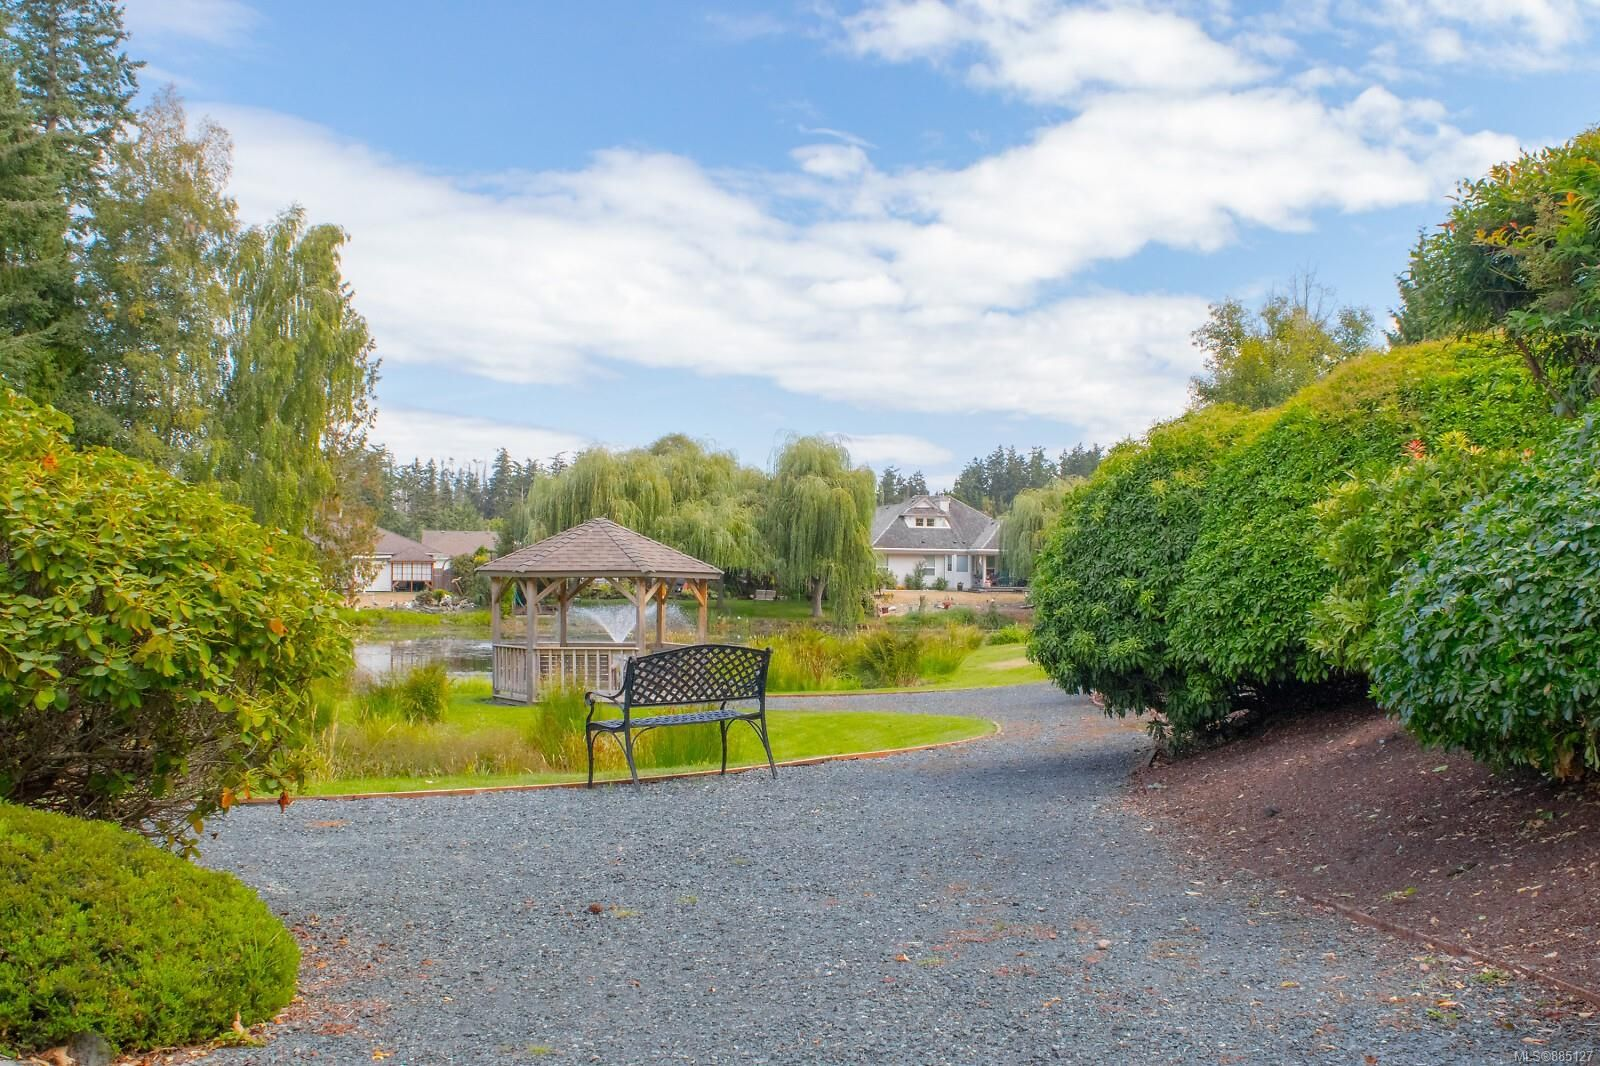 Photo 58: Photos: 26 529 Johnstone Rd in : PQ French Creek Row/Townhouse for sale (Parksville/Qualicum)  : MLS®# 885127